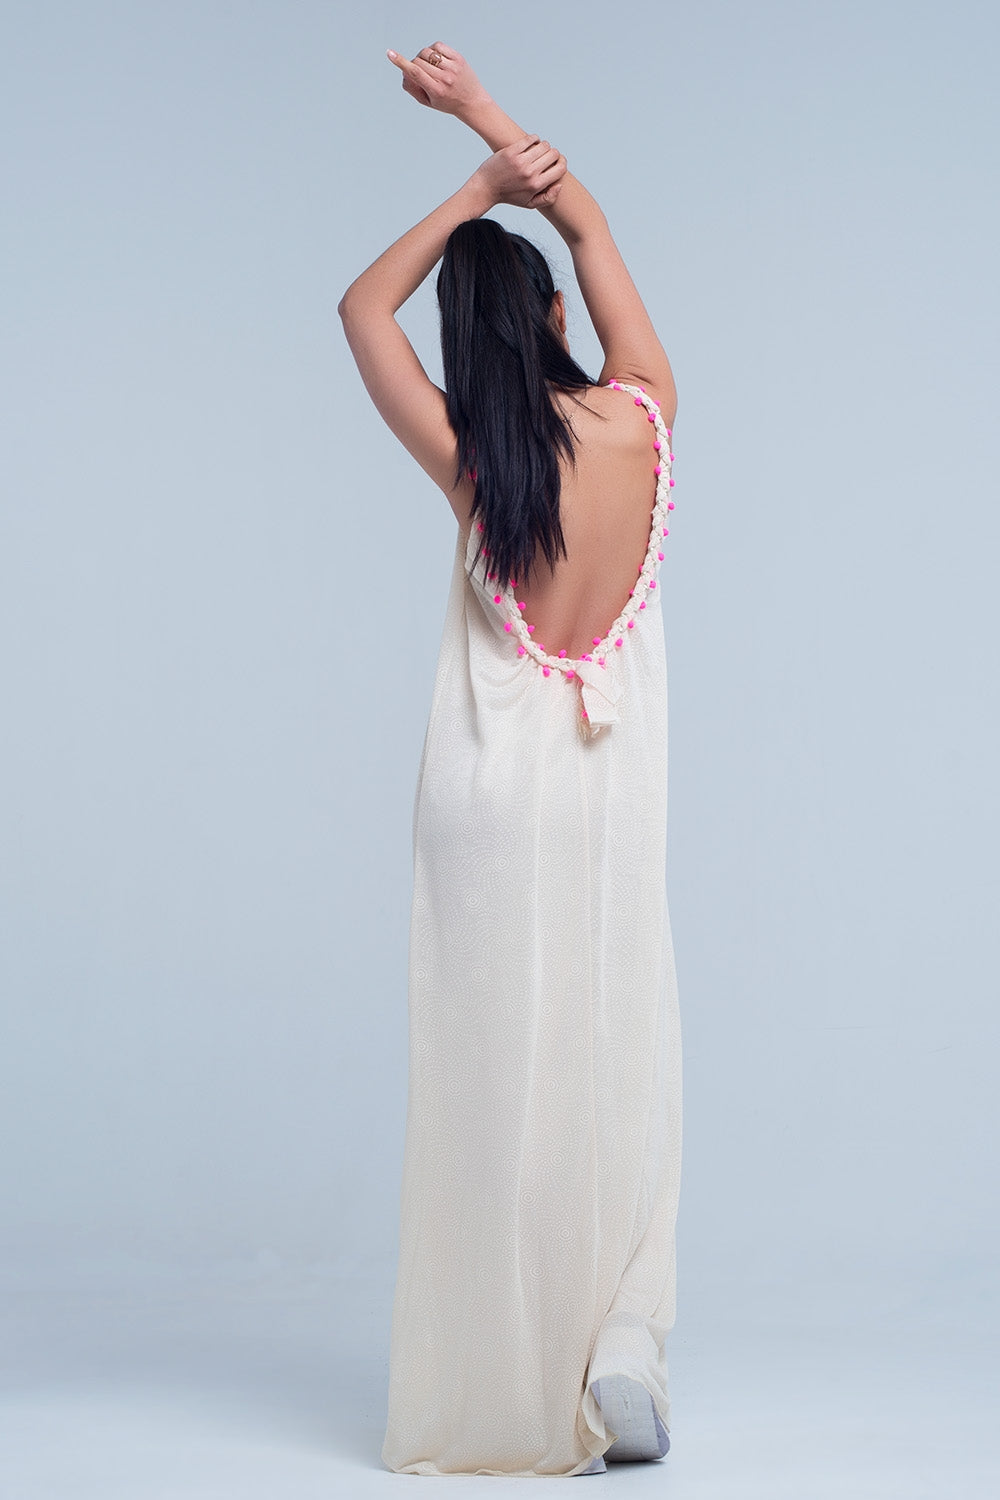 Beige maxi dress with with pom pom detailing - Nomad Bridal